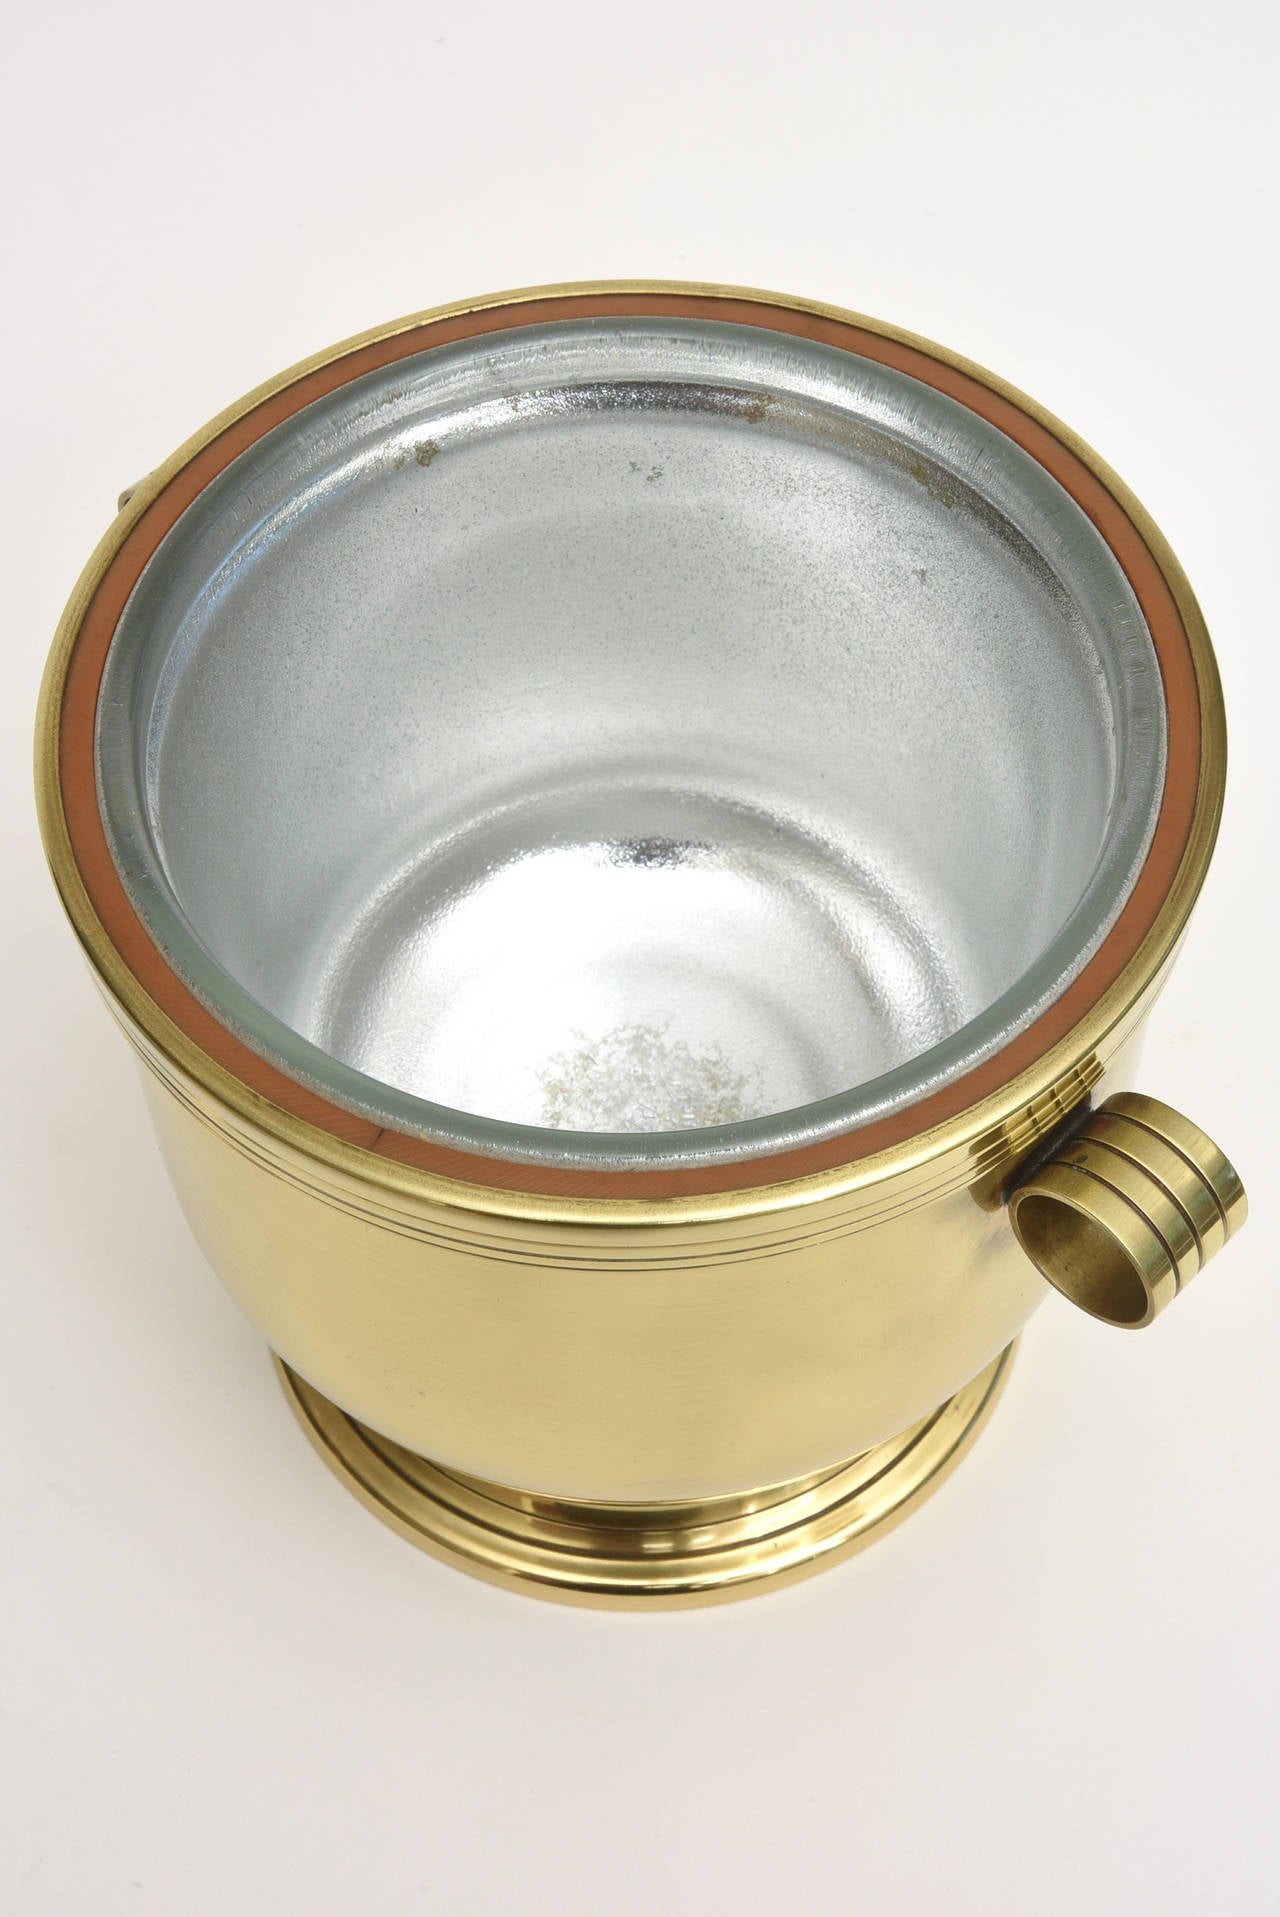 Classic Tommi Parzinger Polished Brass Ice Covered Ice Bucket For Sale 3